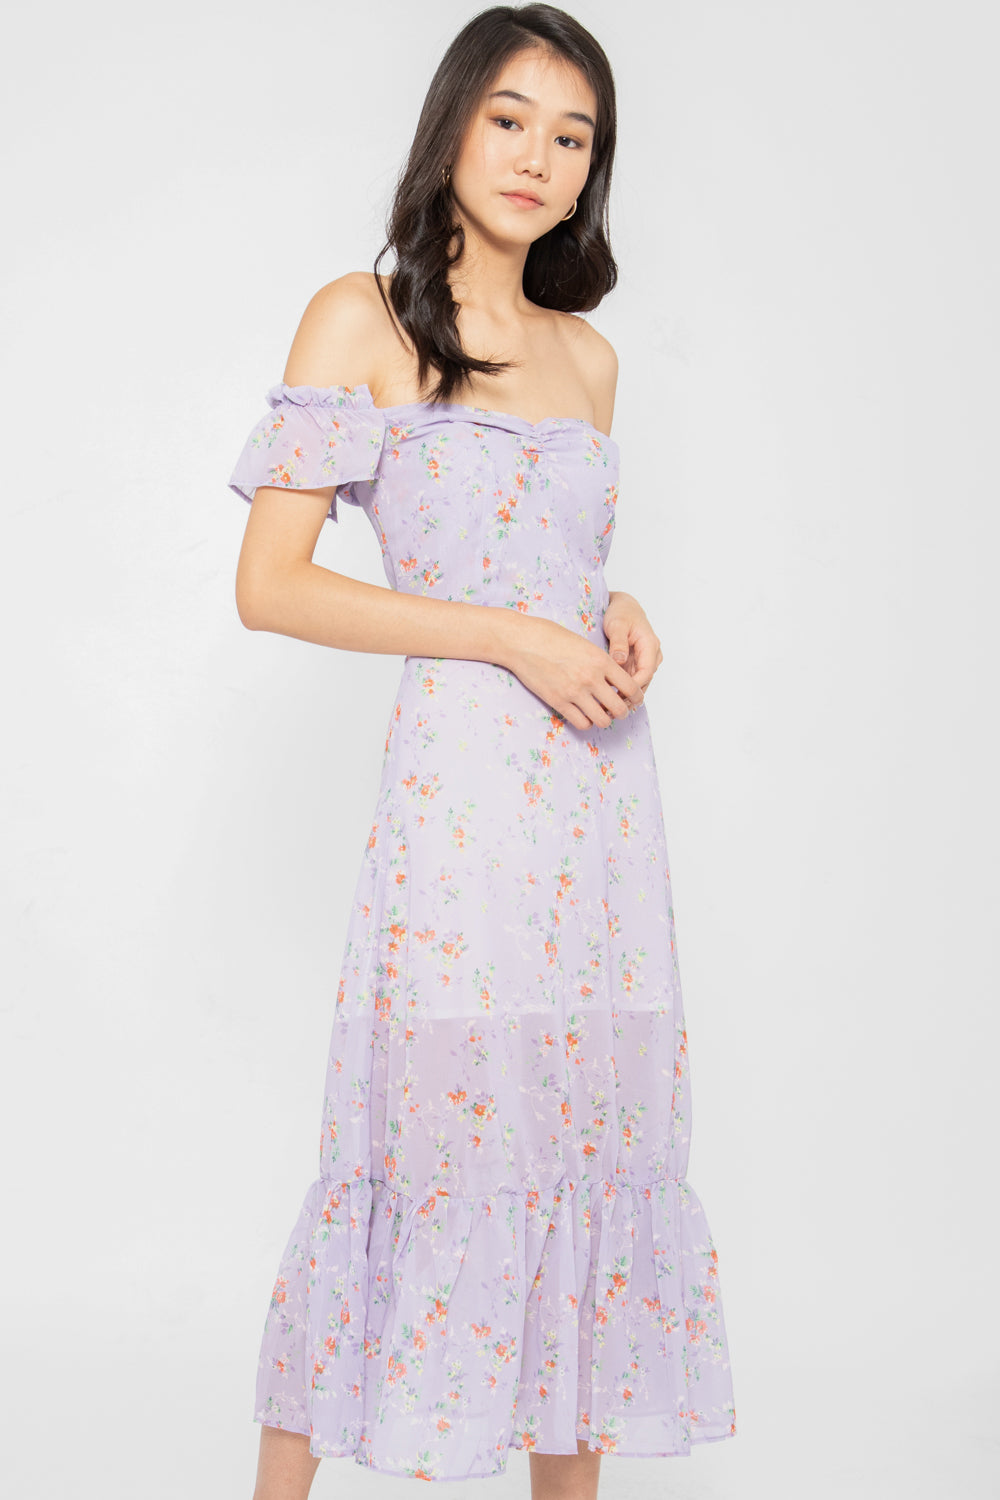 Valentina Floral Off-Shoulder Dress - Three One Duo